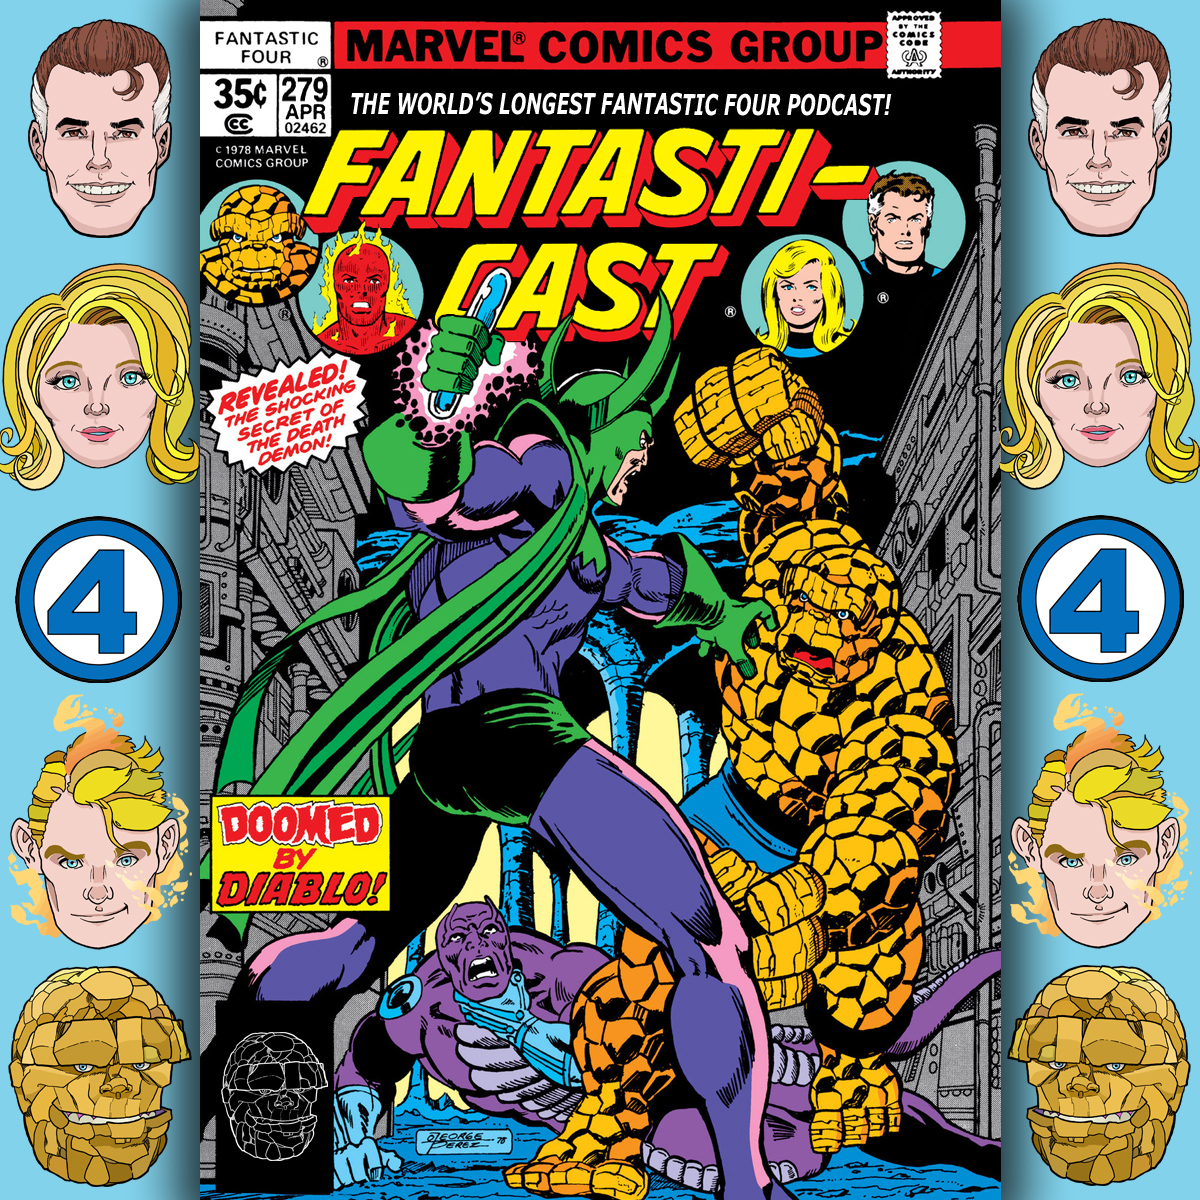 The Fantasticast Episode 279